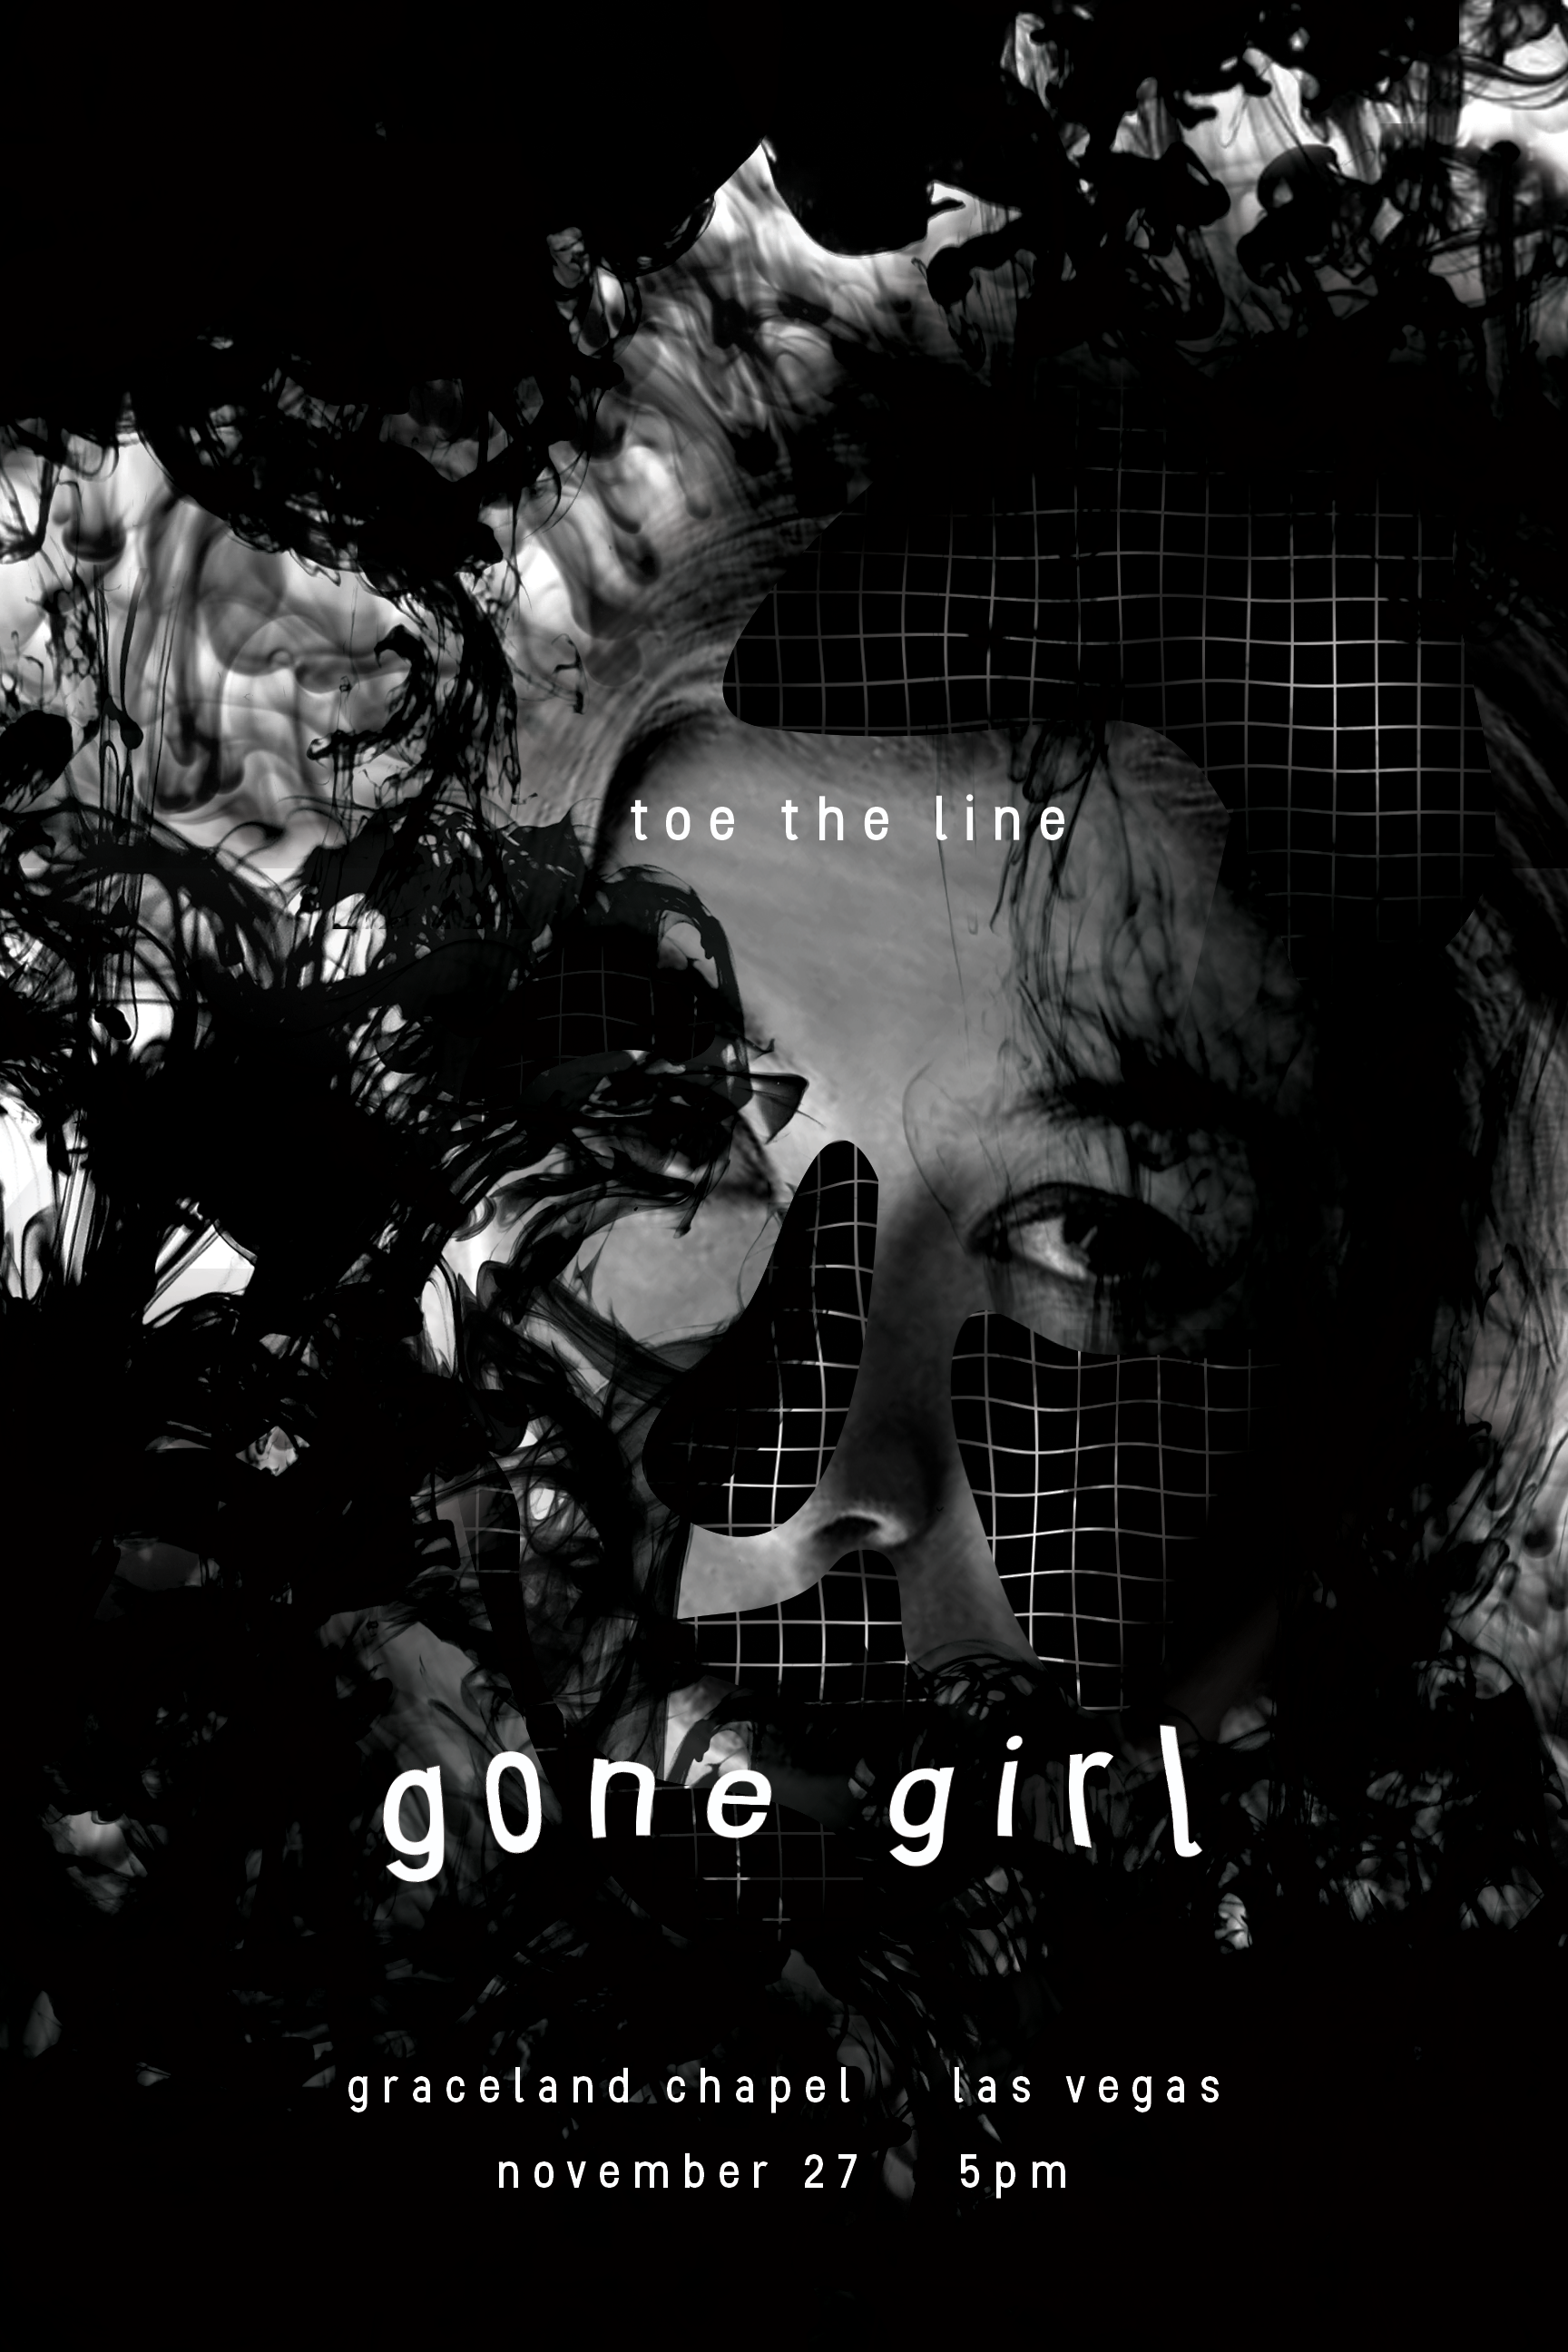 gone_girl_01.png